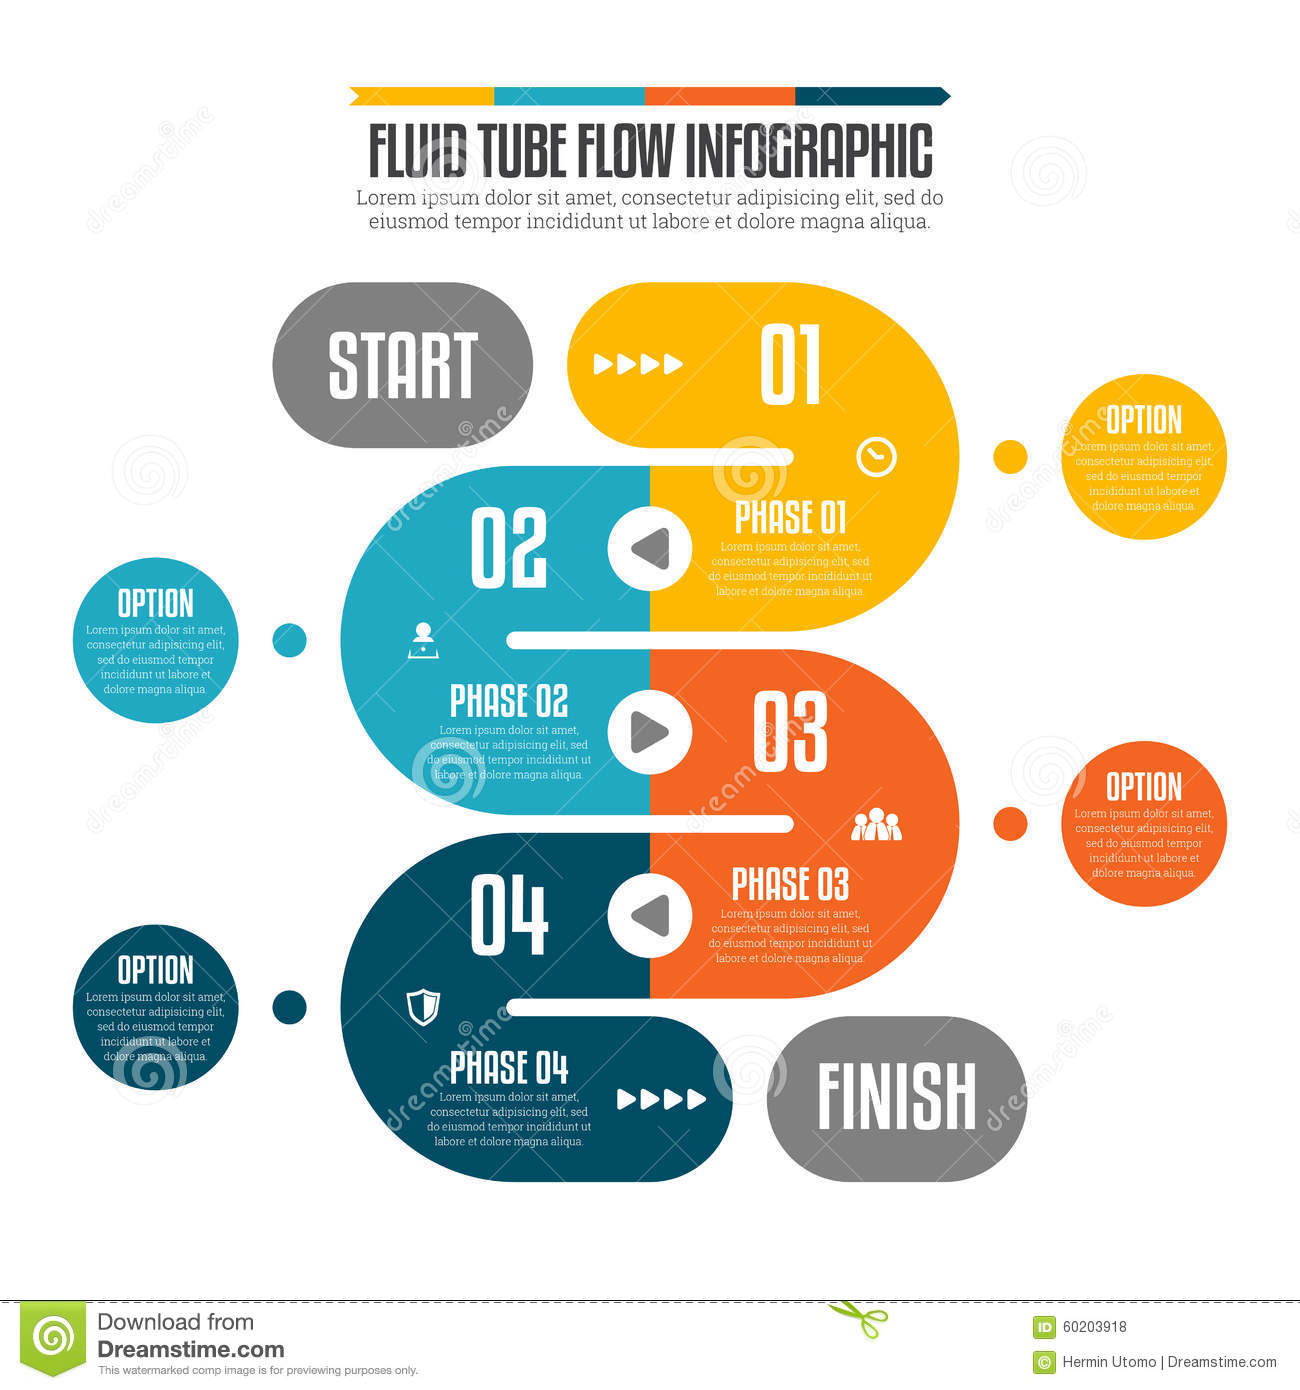 Fluid Tube Flow Infographic Stock Vector Illustration Of